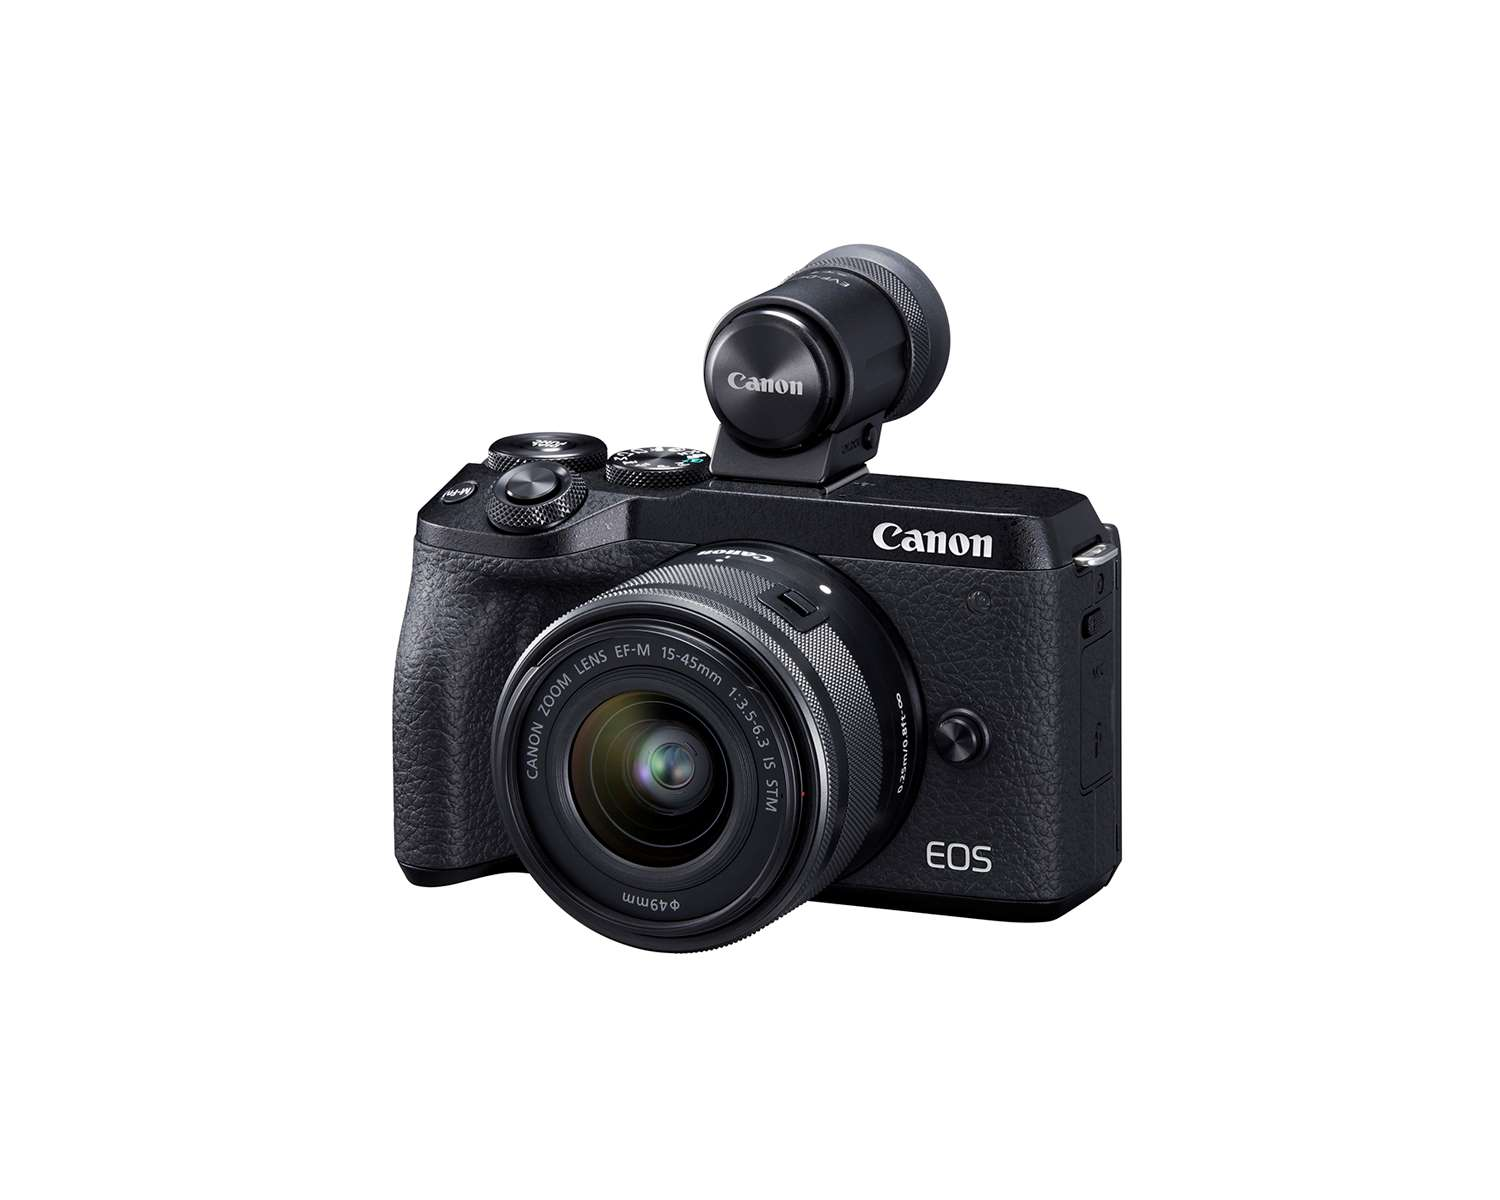 https://i0.wp.com/digital-photography-school.com/wp-content/uploads/2020/08/Canon-EOS-M7-rumor-2.jpg?ssl=1